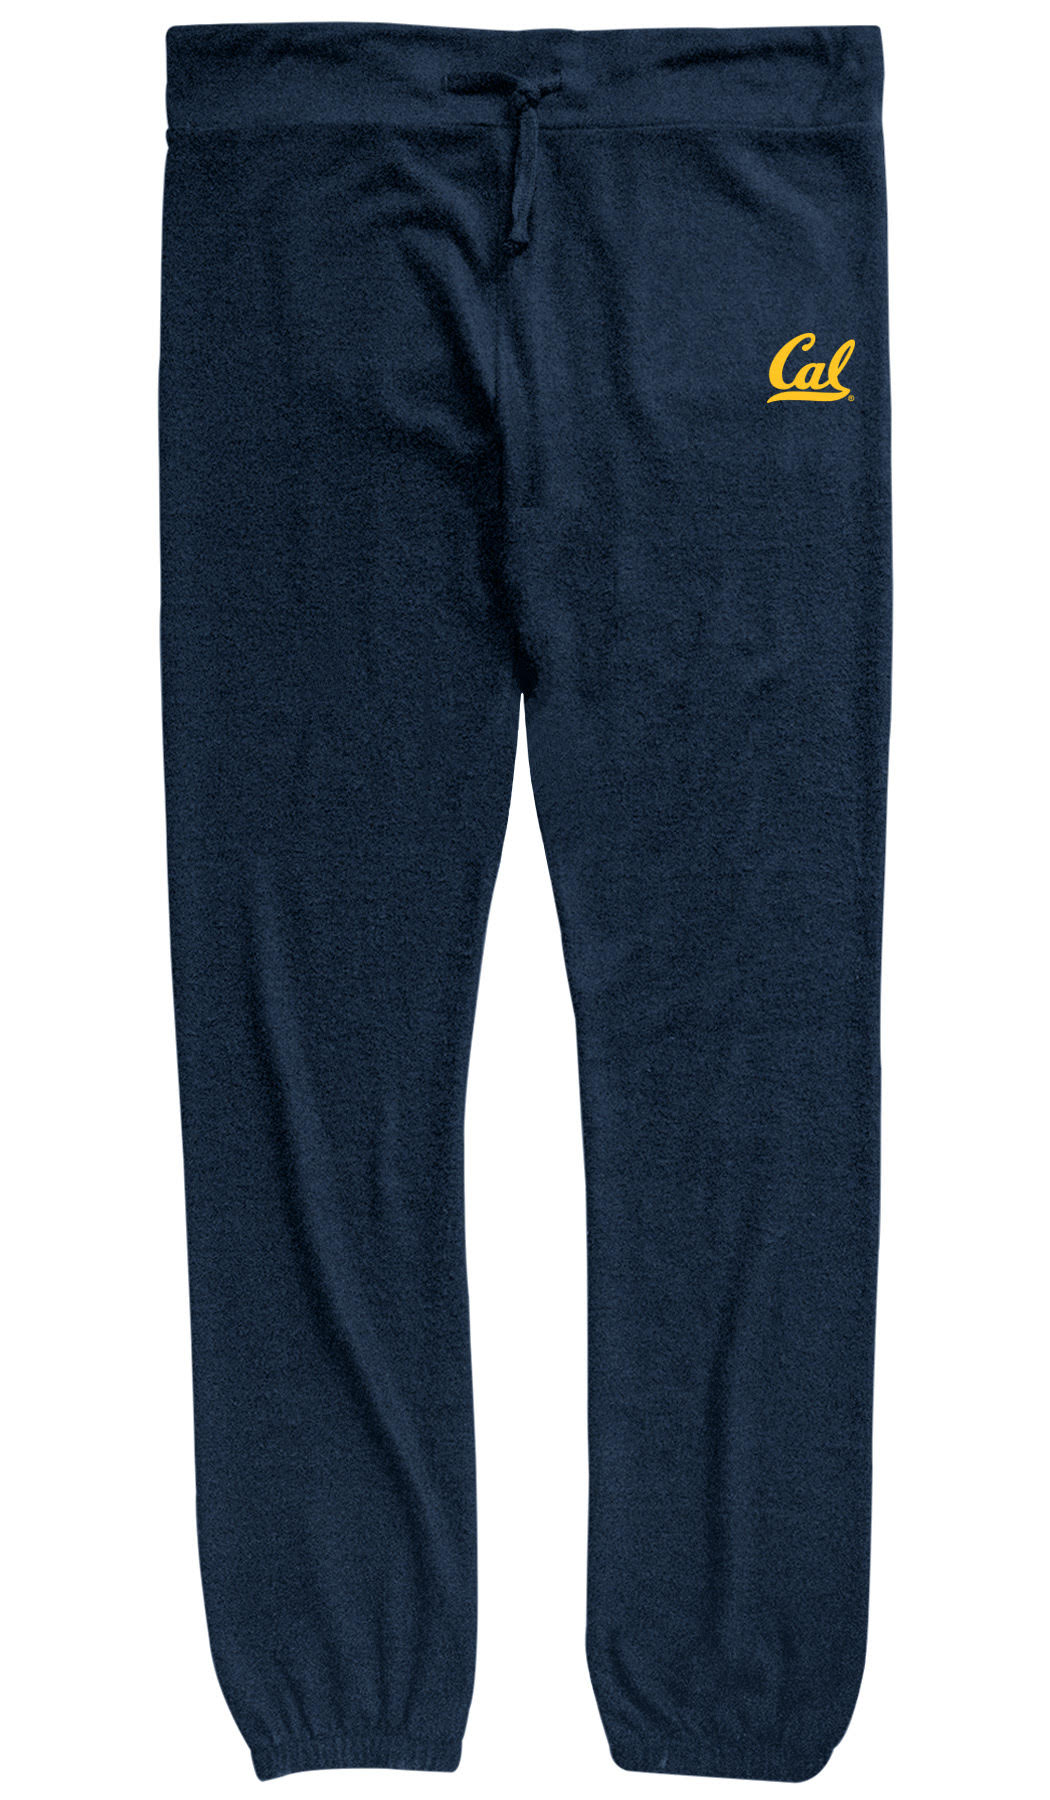 University of California Berkeley Celena Brushed Hacci Cozy Jogger